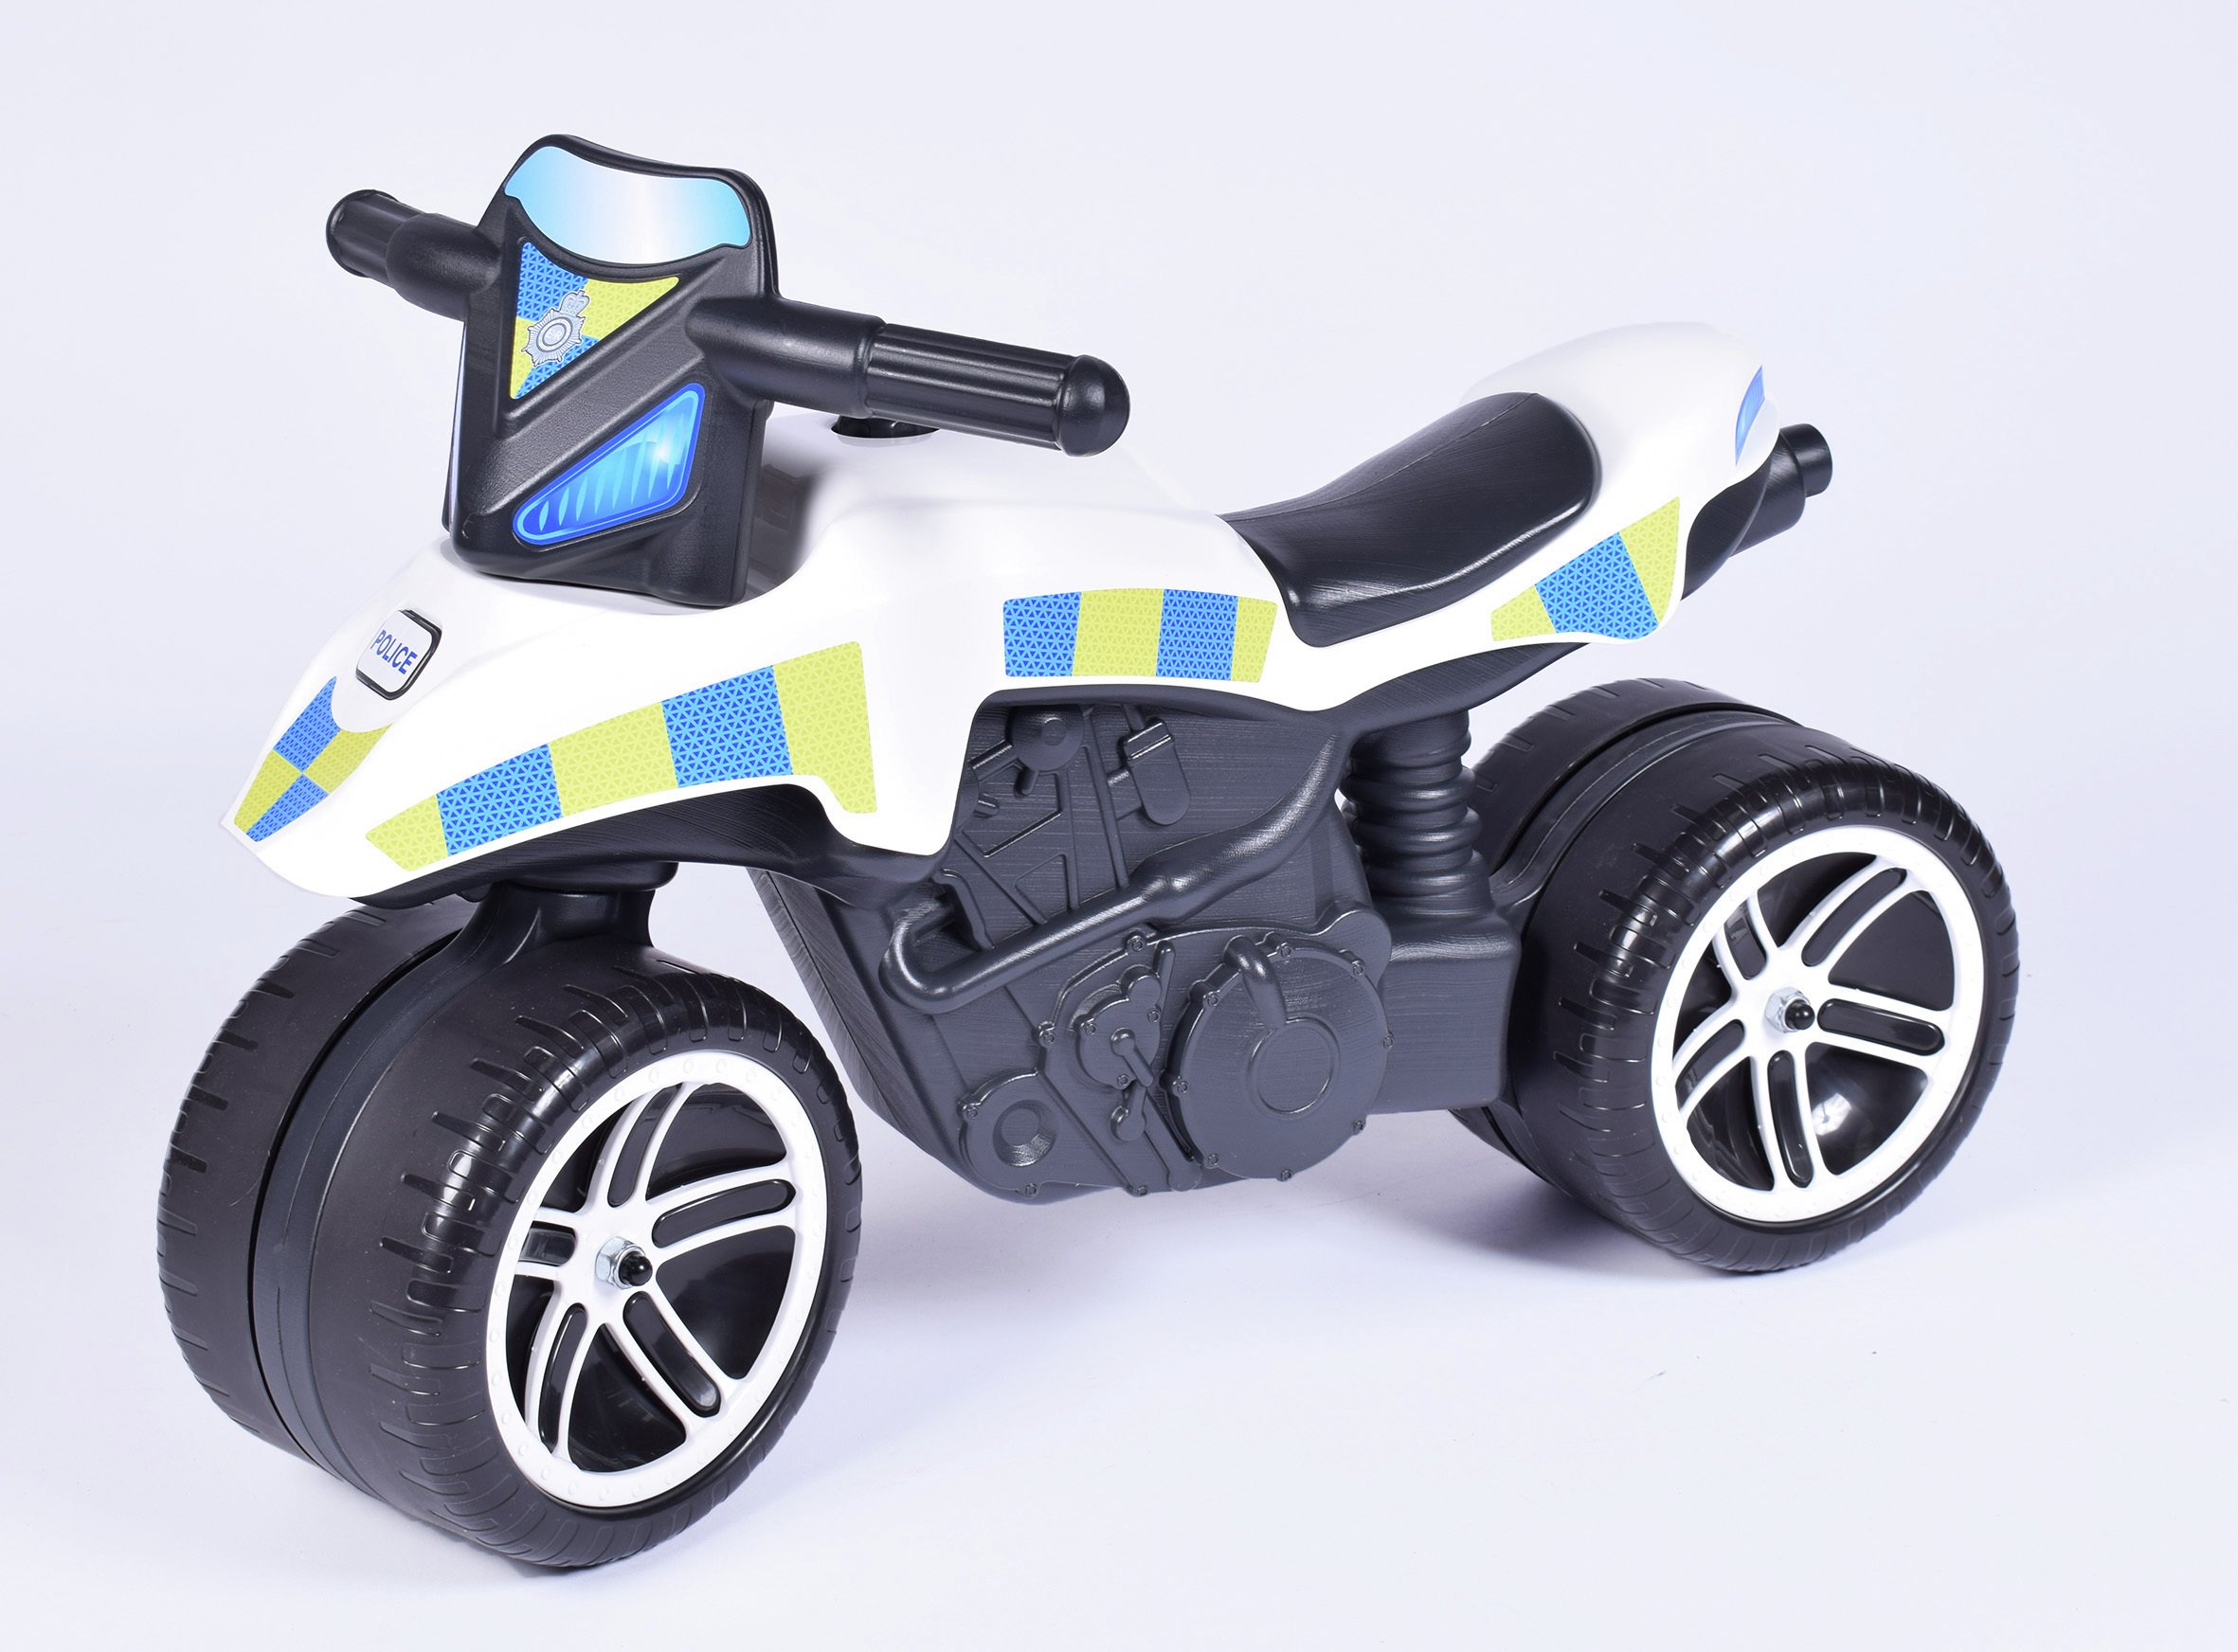 Image of Falk Foot to Floor Police Bike.